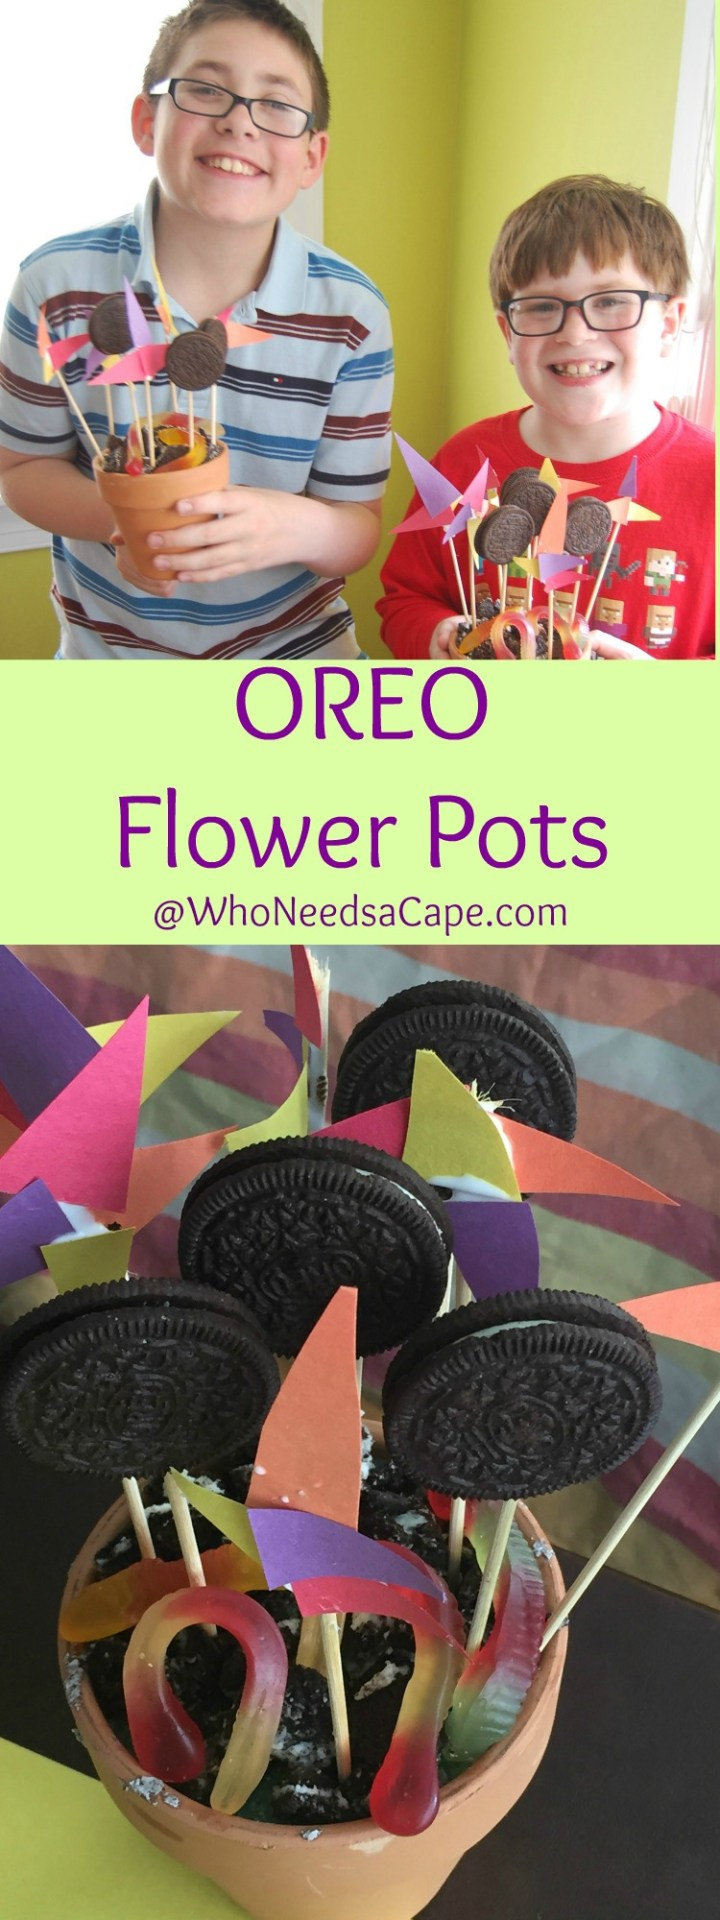 OREO Flower Pots are the sweetest gift - made by the kids and yummy treats. Every dad or grandpa will LOVE getting these